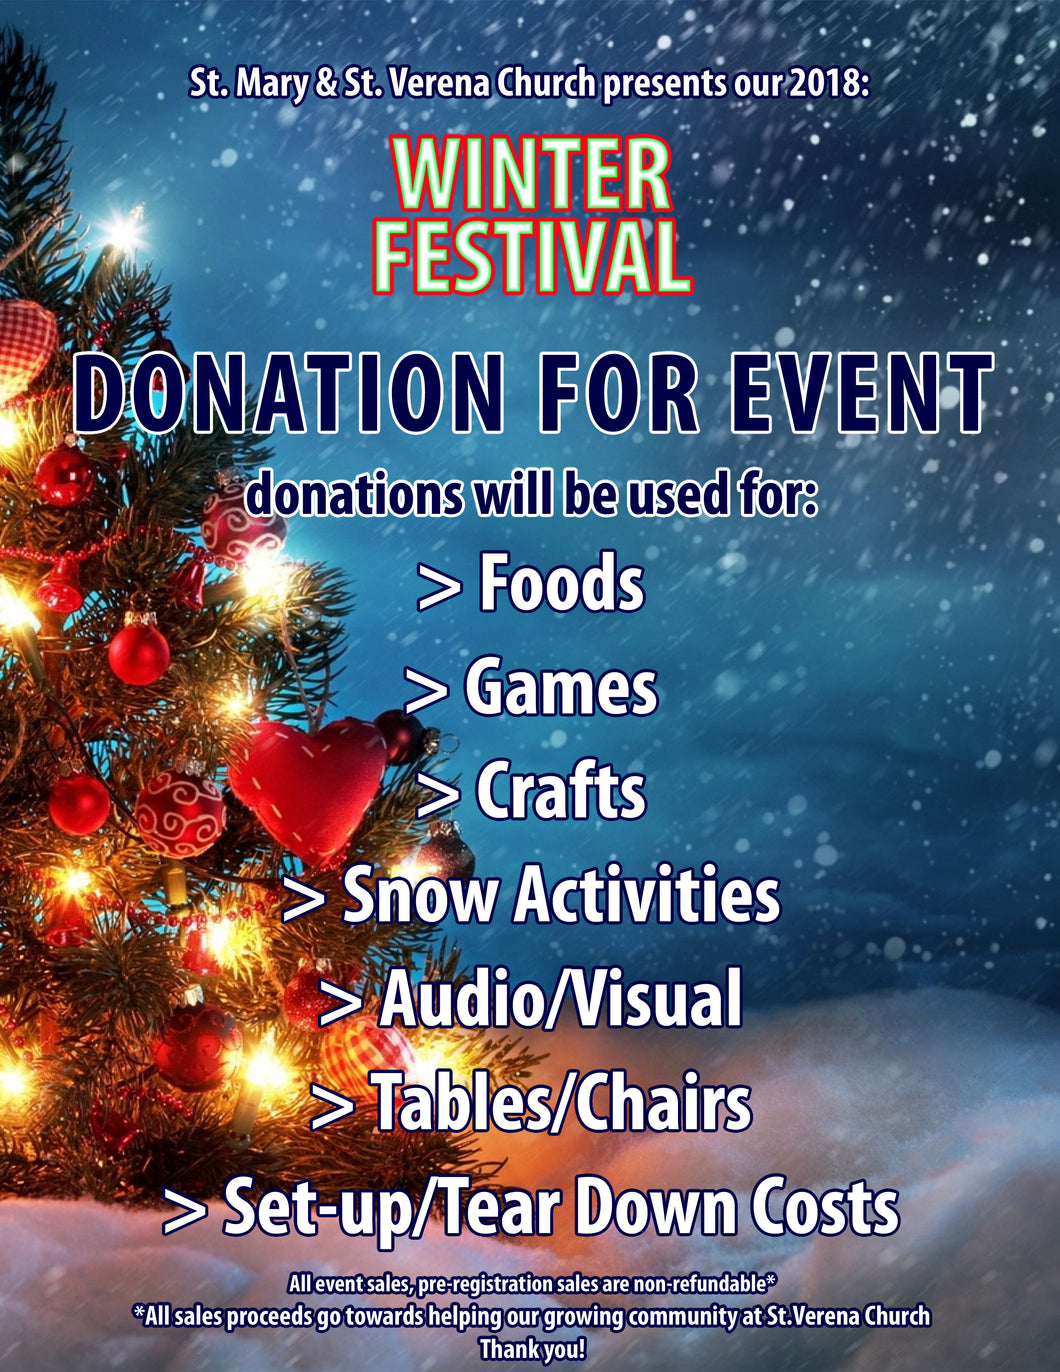 $25 Donation to the Winter Festival